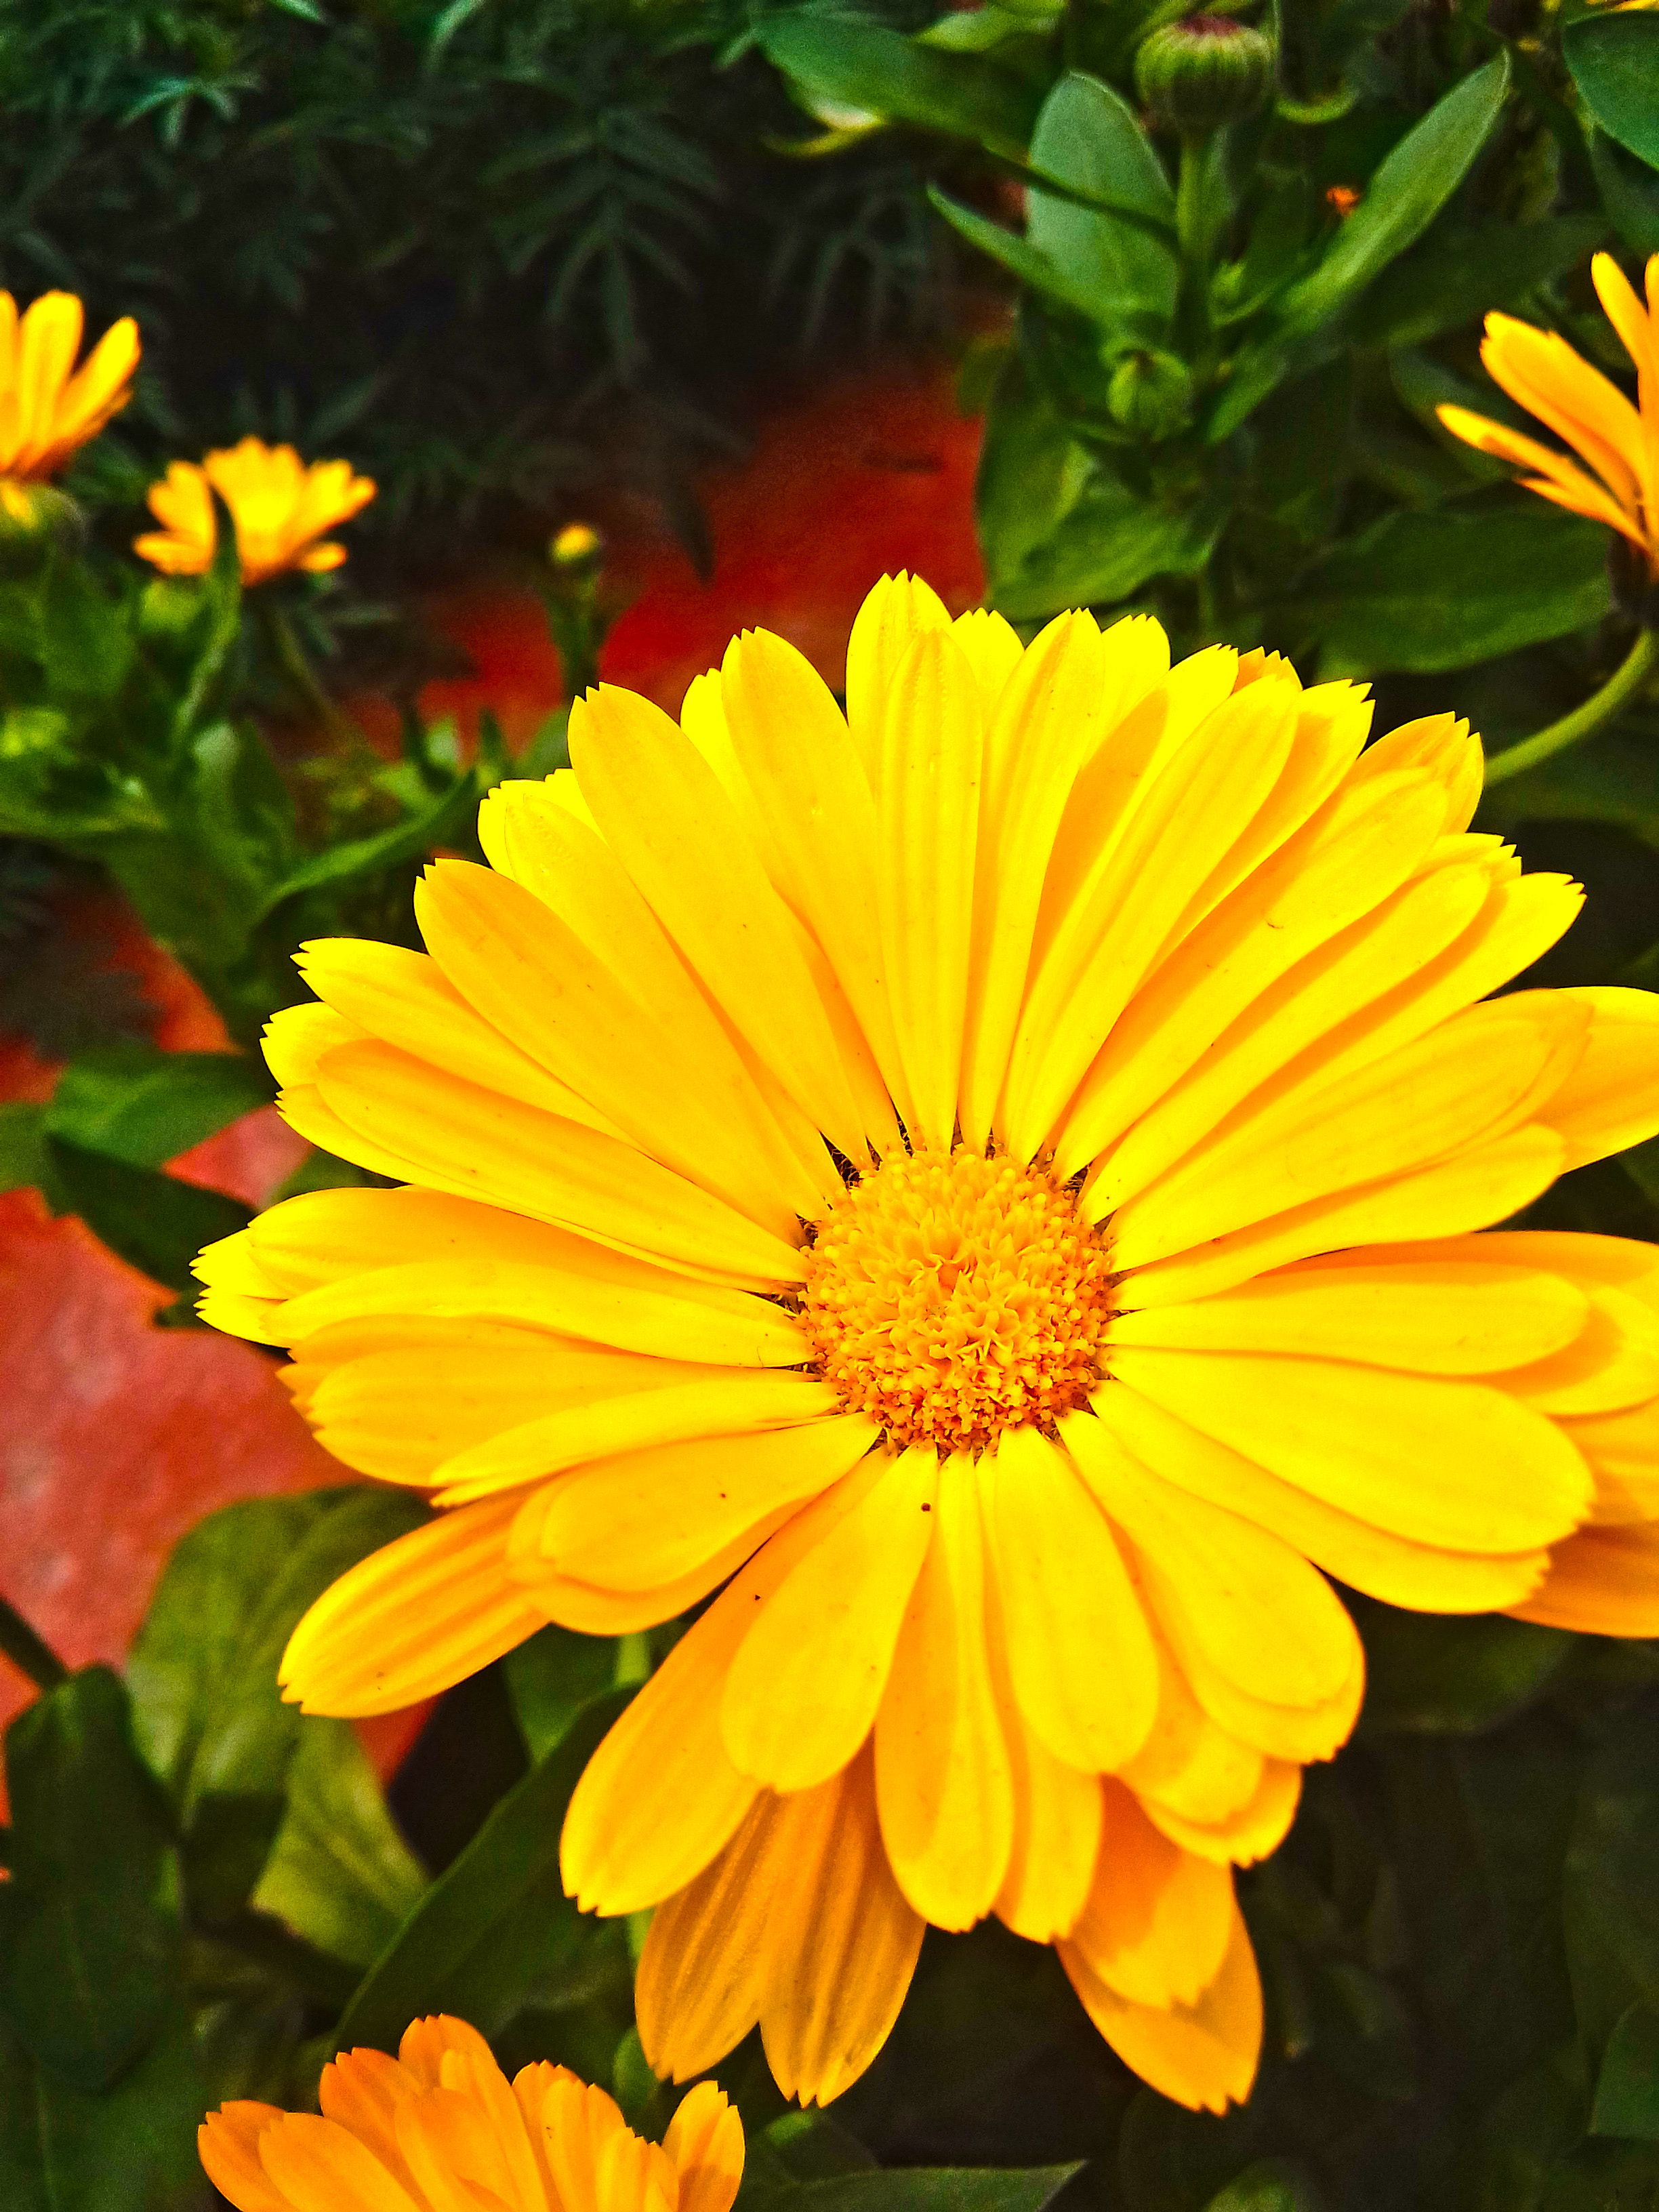 marigold is a beautiful flower